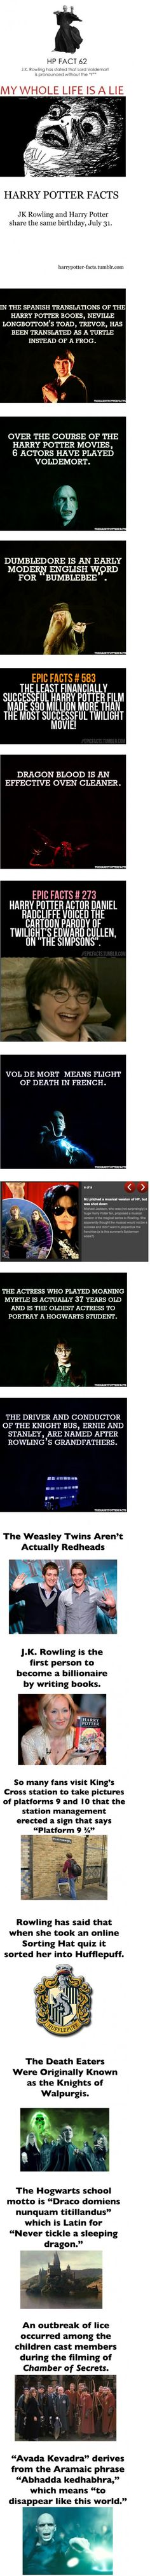 Funny pictures about Facts You May Not Know About Harry Potter. Oh, and cool pics about Facts You May Not Know About Harry Potter. Also, Facts You May Not Know About Harry Potter photos. Ridiculous Harry Potter, Harry Potter Facts, Harry Potter Love, Harry Potter Fandom, Harry Potter Books, Hogwarts, Slytherin, Lord Voldemort, The Big Bang Therory